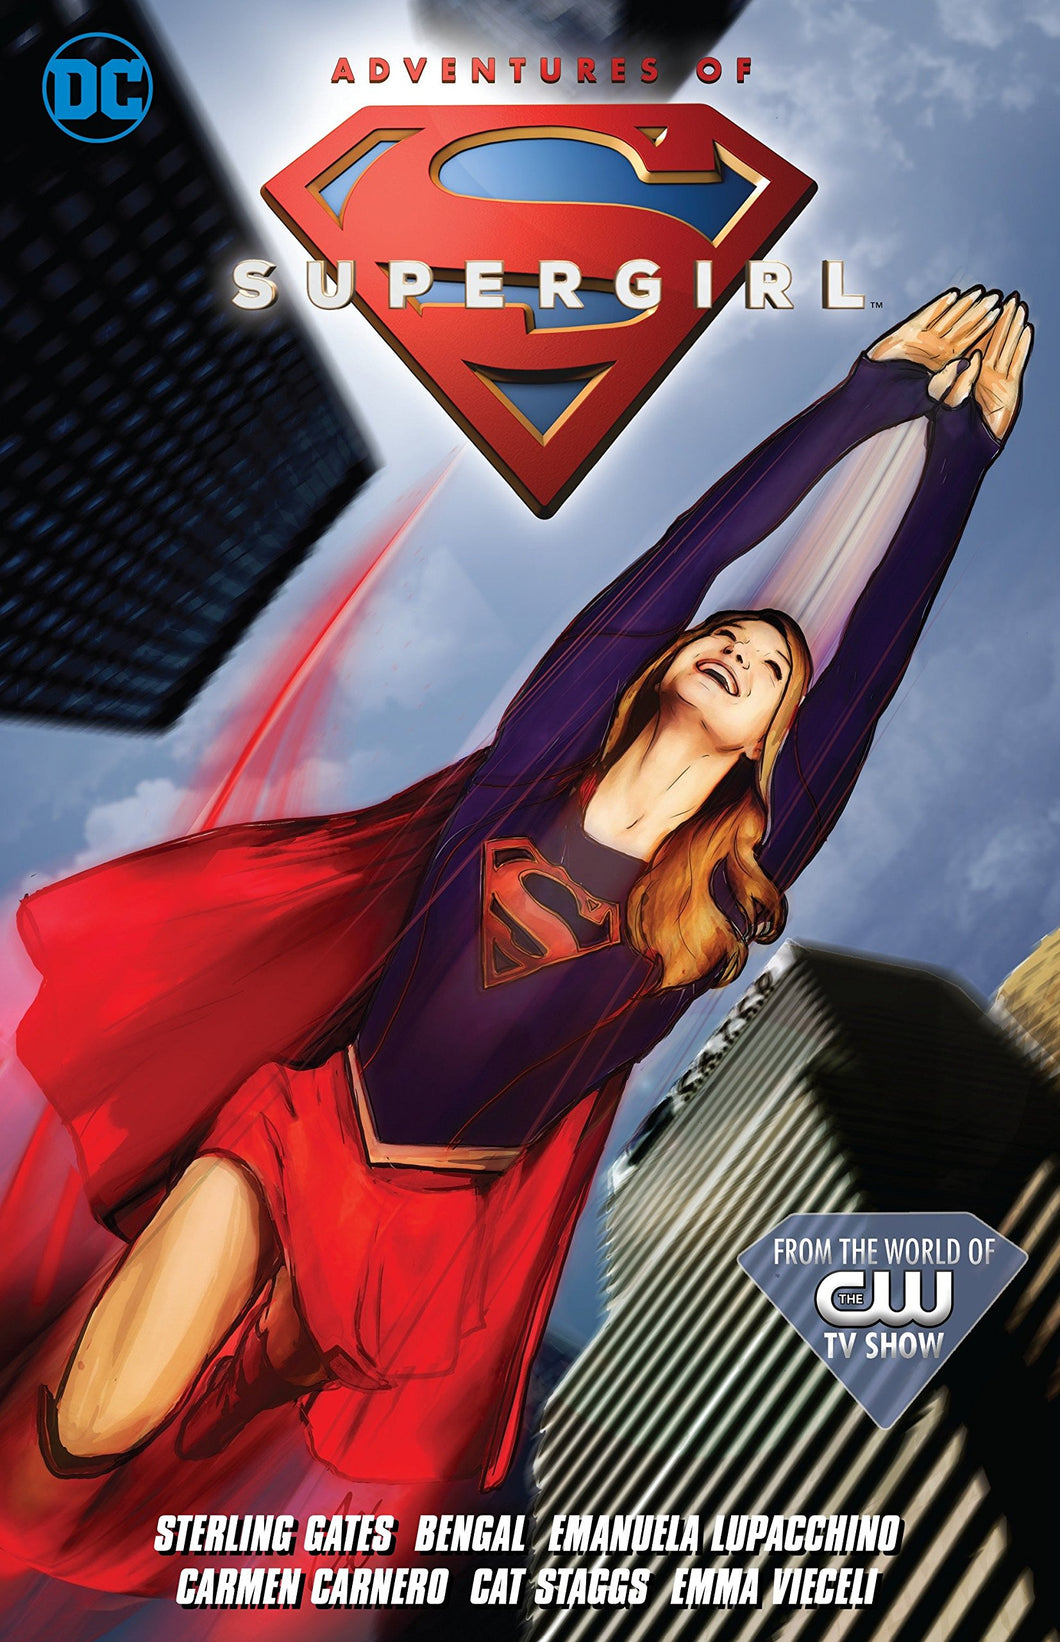 Adventures of Supergirl Vol. 1 (TPB) (2016)